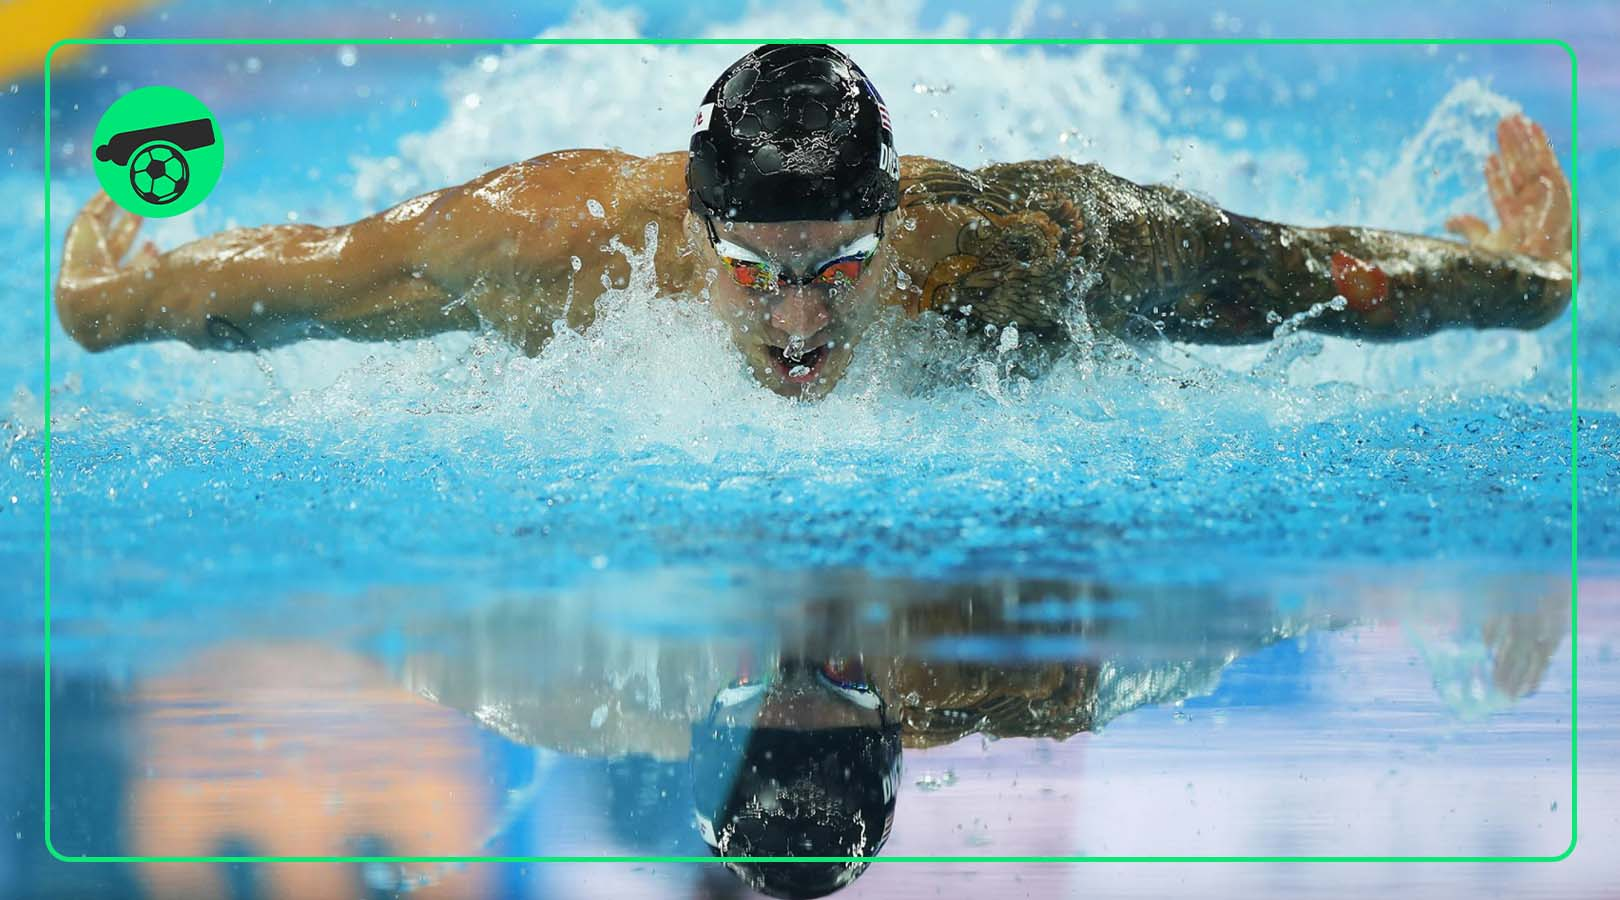 Caeleb Dressel won 5 gold medals and set a record